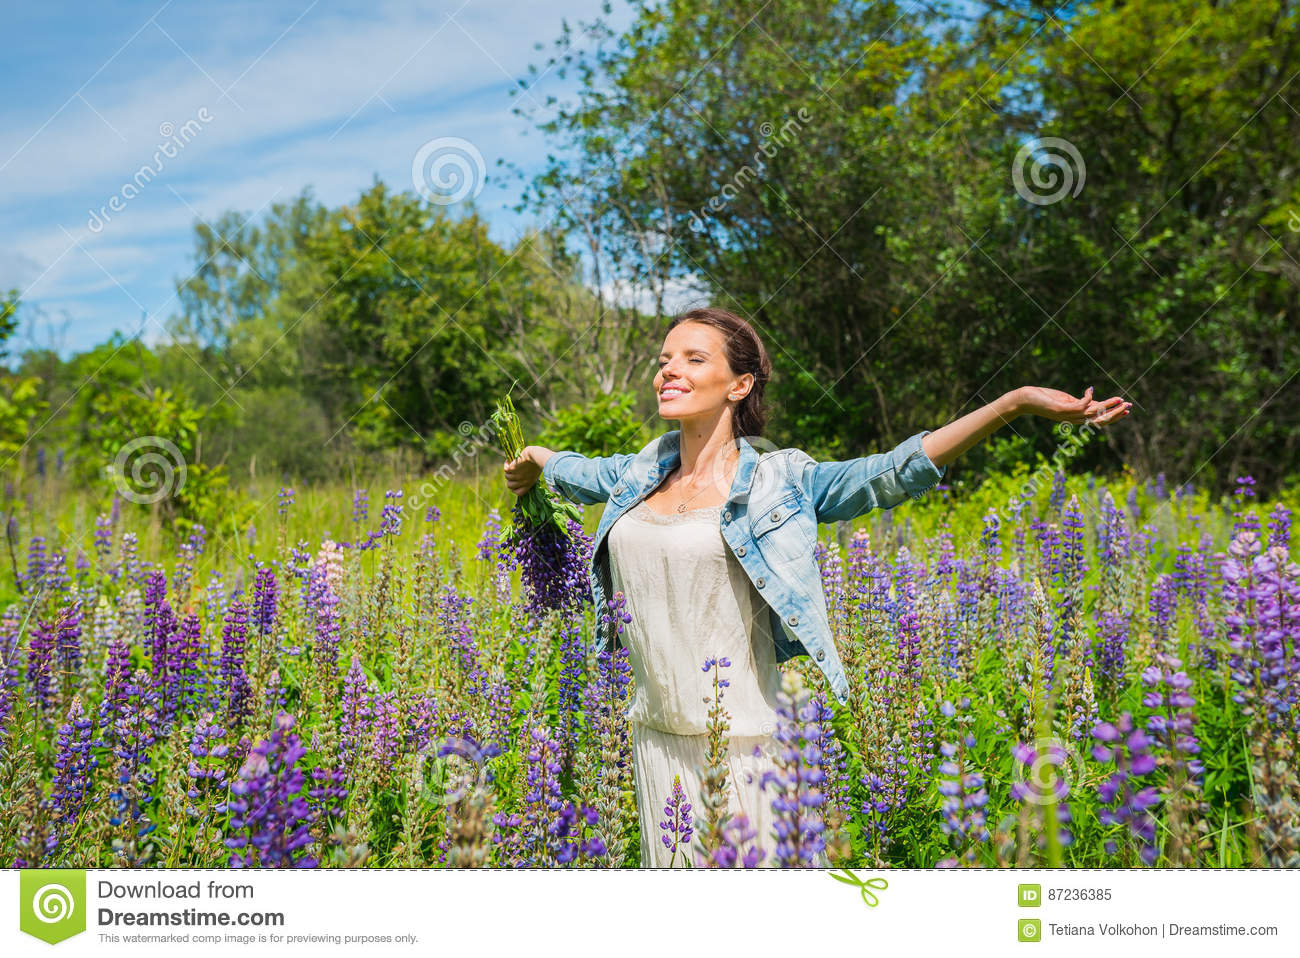 Young woman, happy, standing among the field of violet lupines, smiling, purple flowers. Blue sky on the background. Summer, with